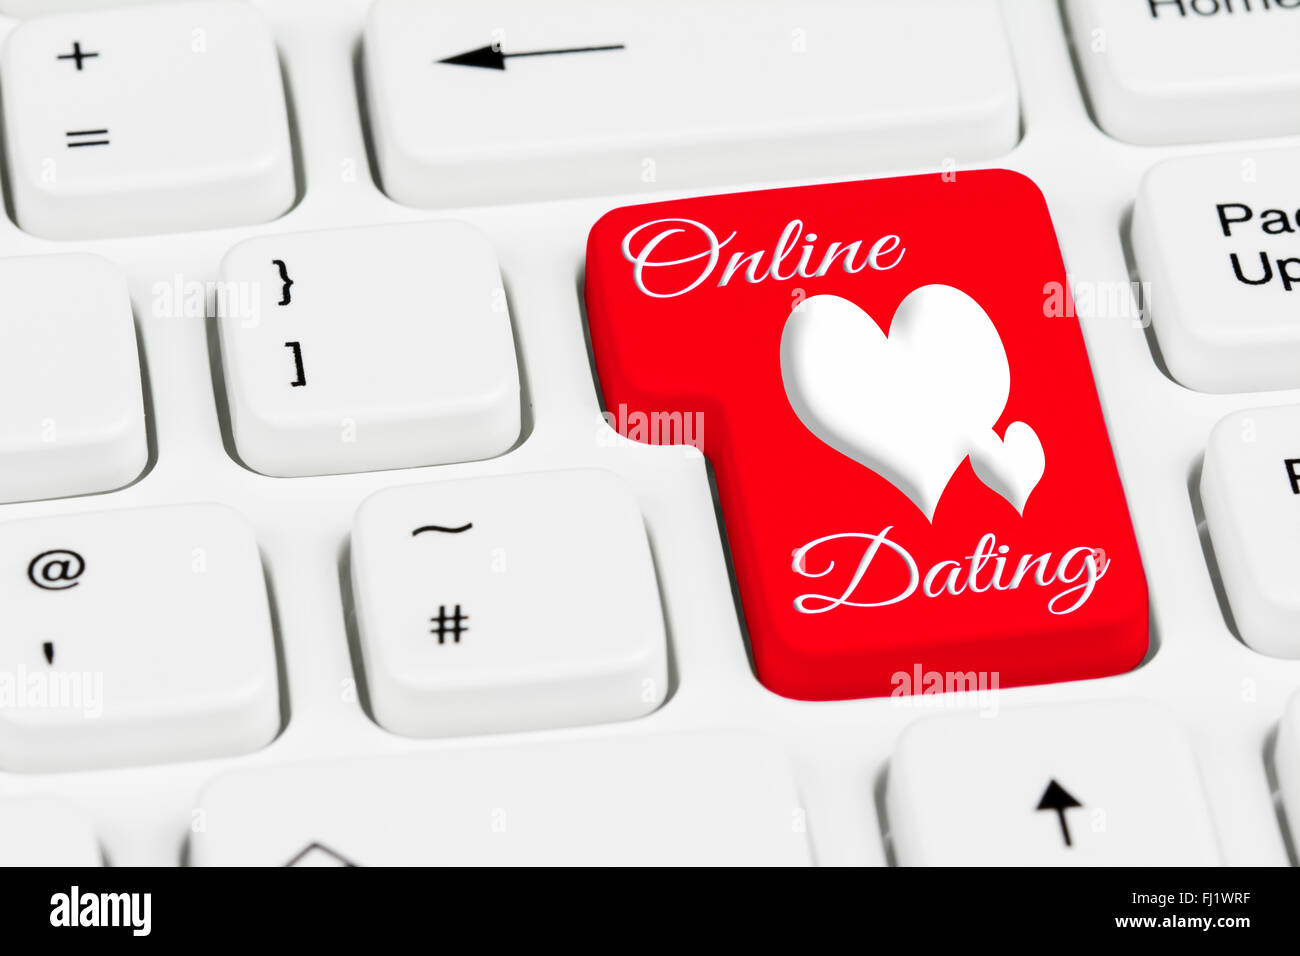 Online dating button on a white computer keyboard. - Stock Image